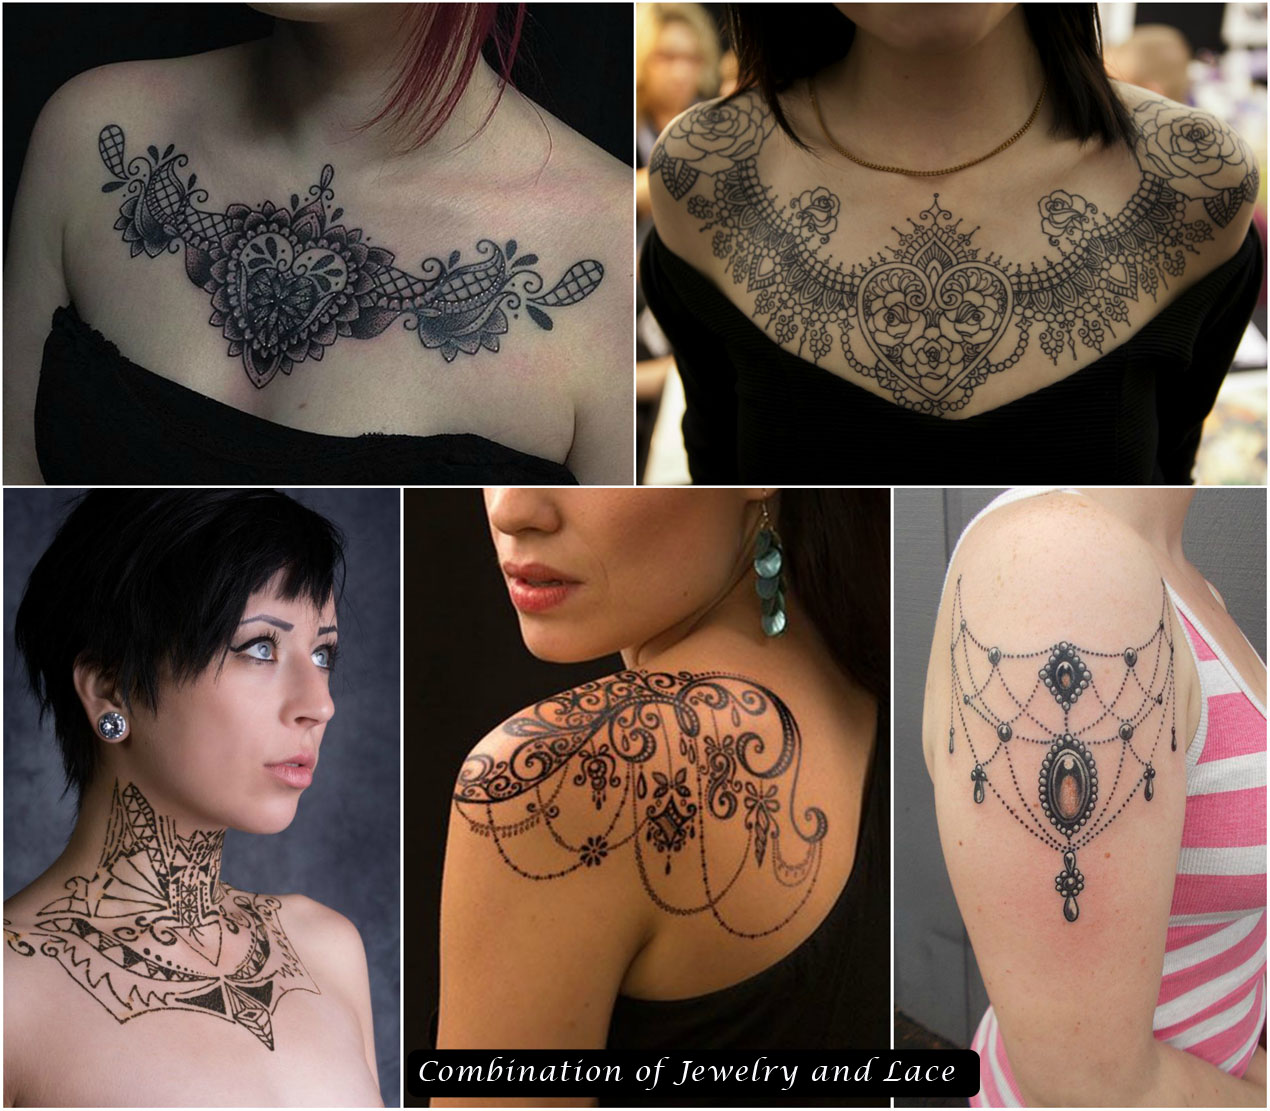 Combination of Jewelry and Lace